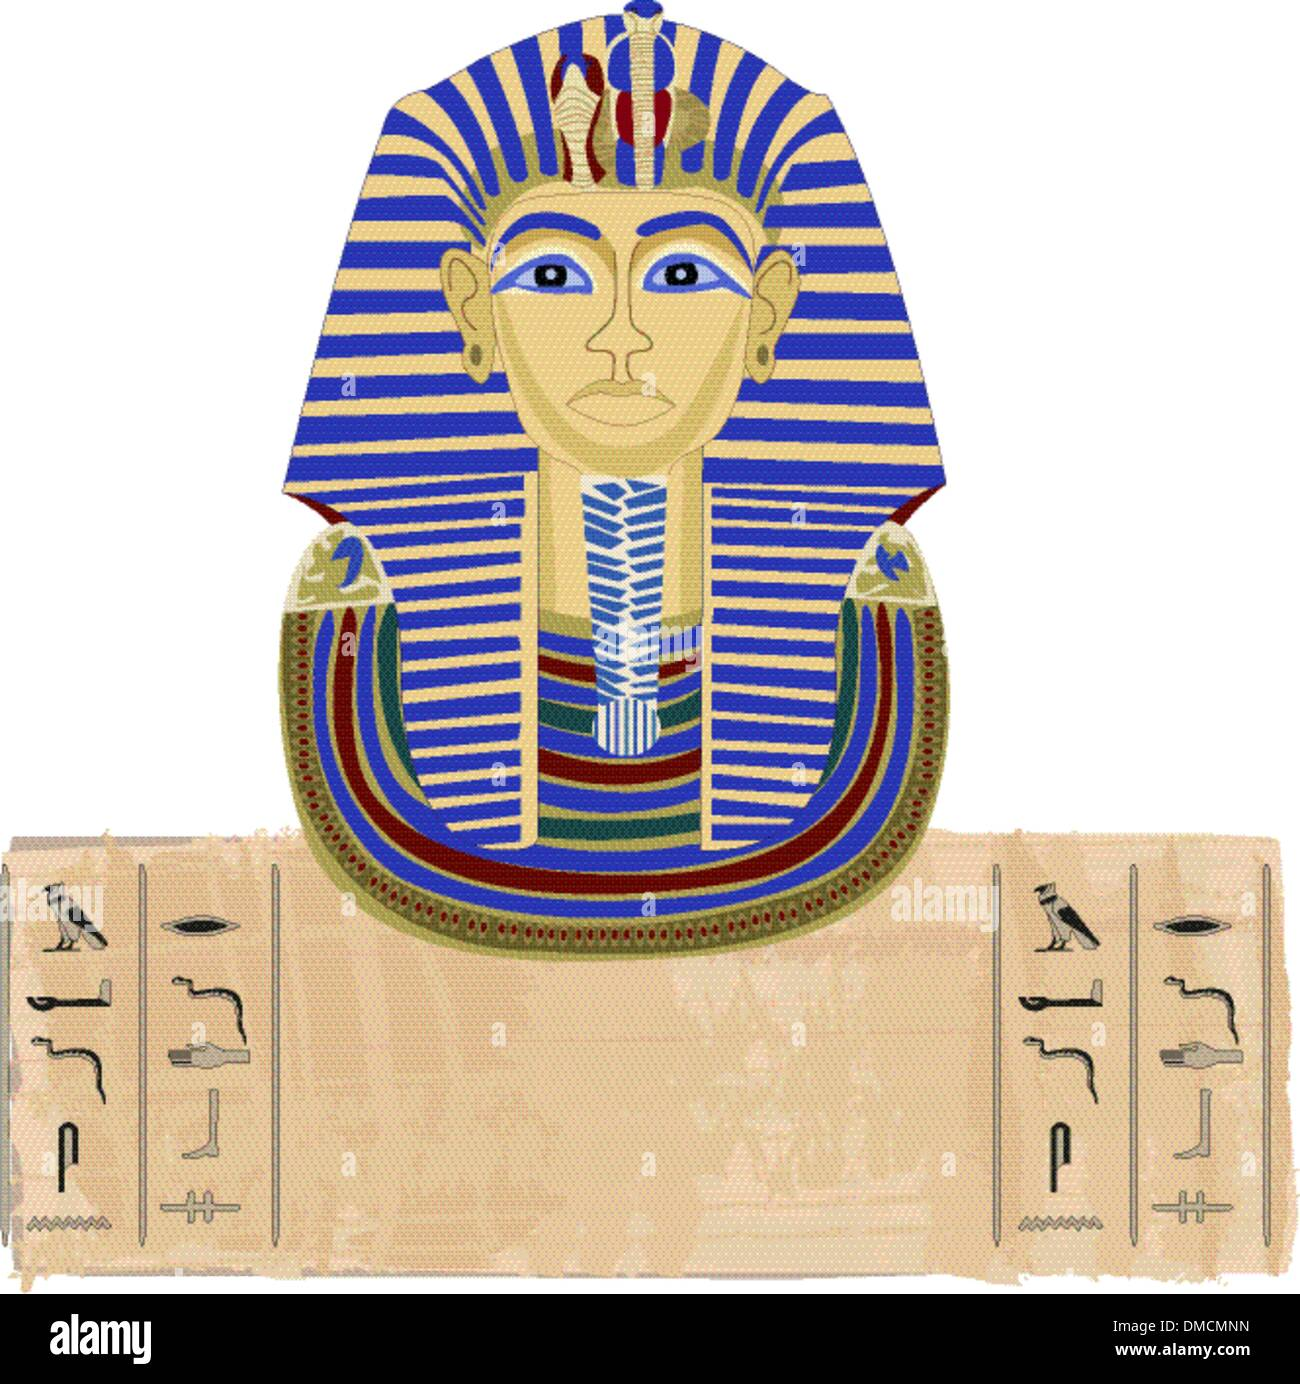 Tutankhamun and Hieroglyphs - Stock Image